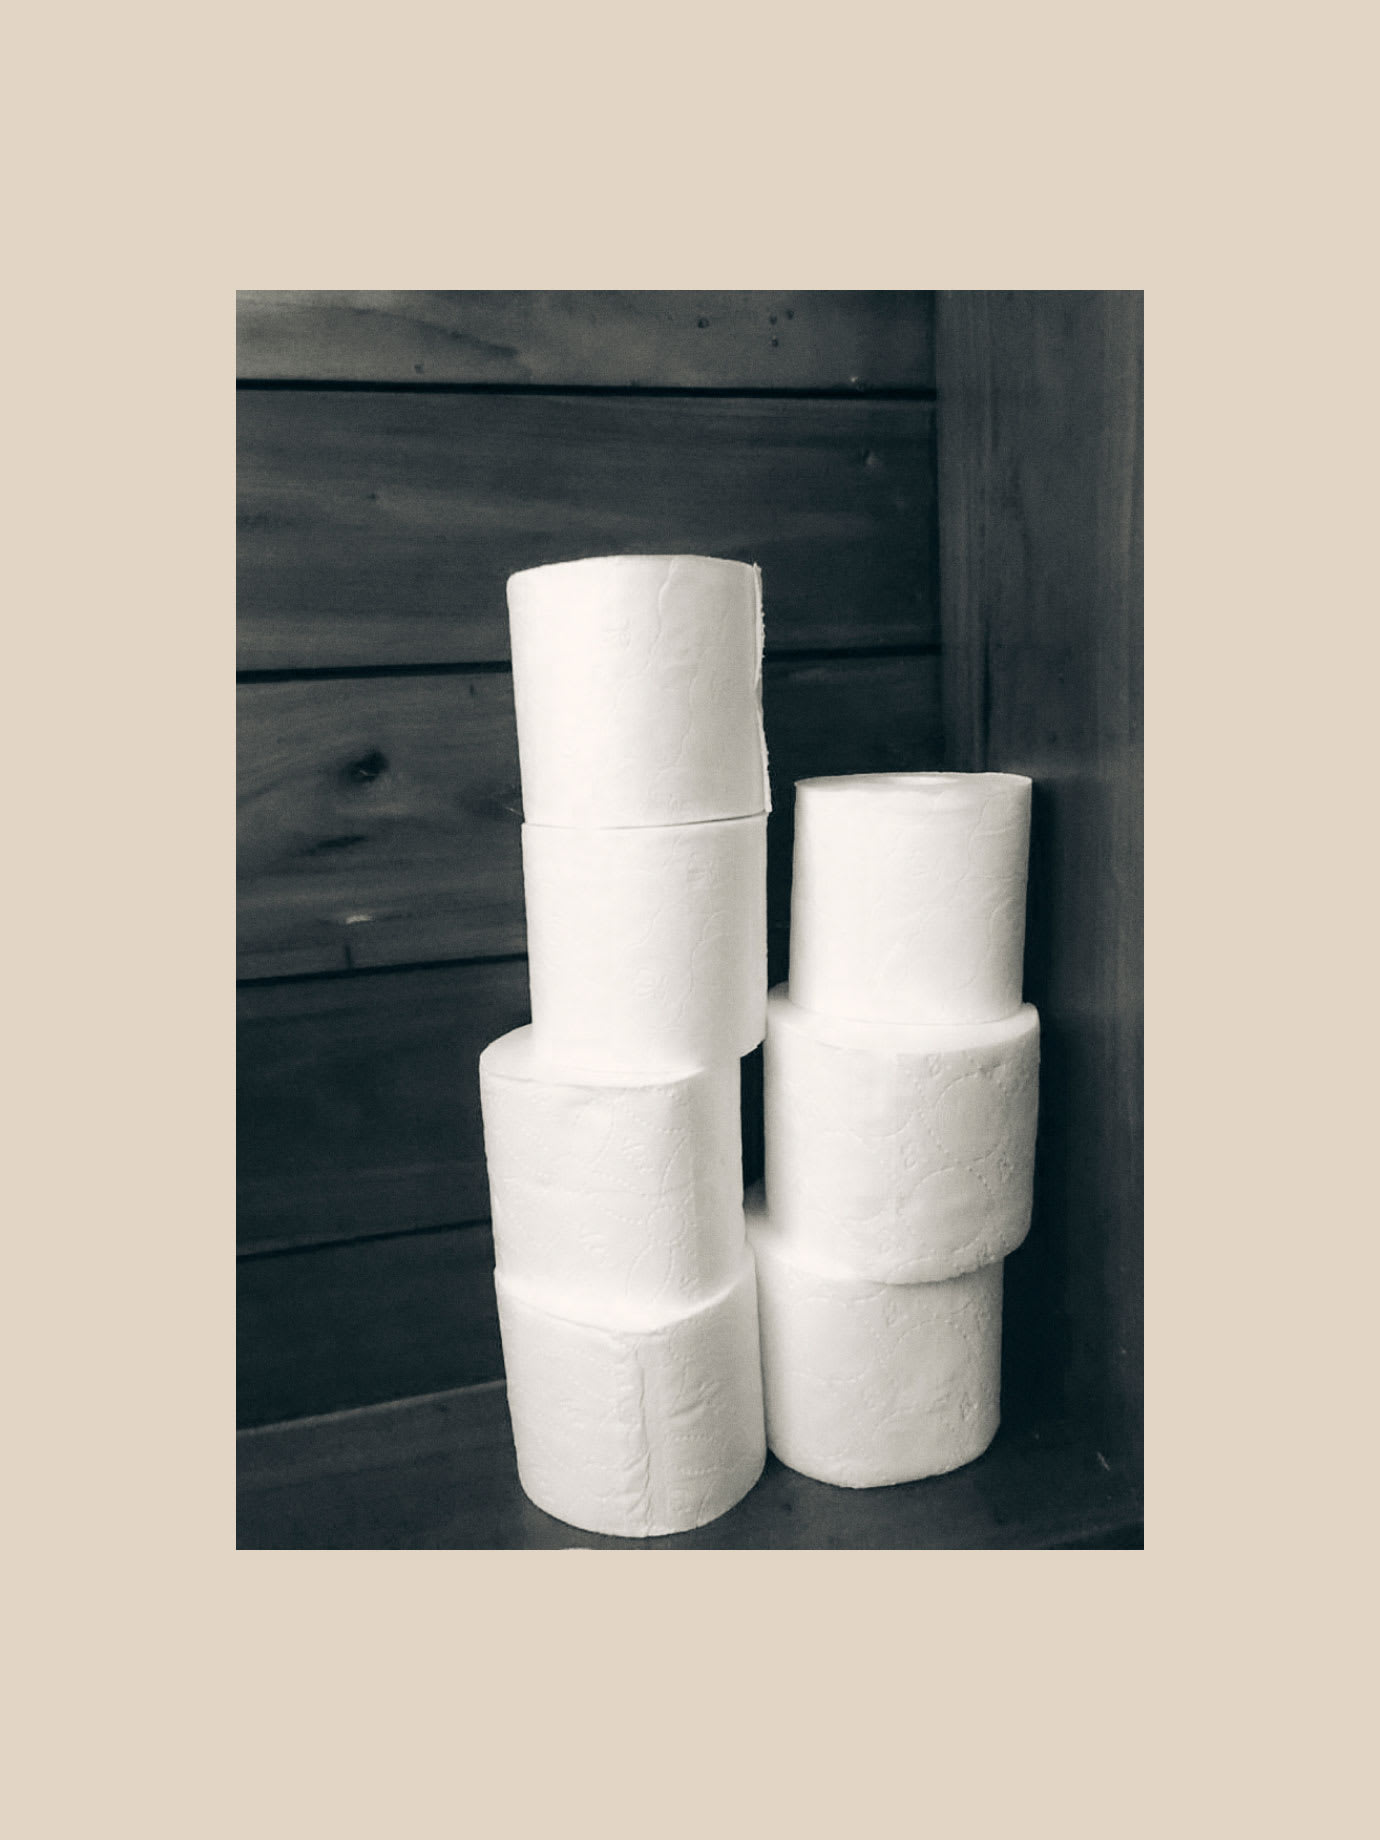 Towers of toilet paper rolls.